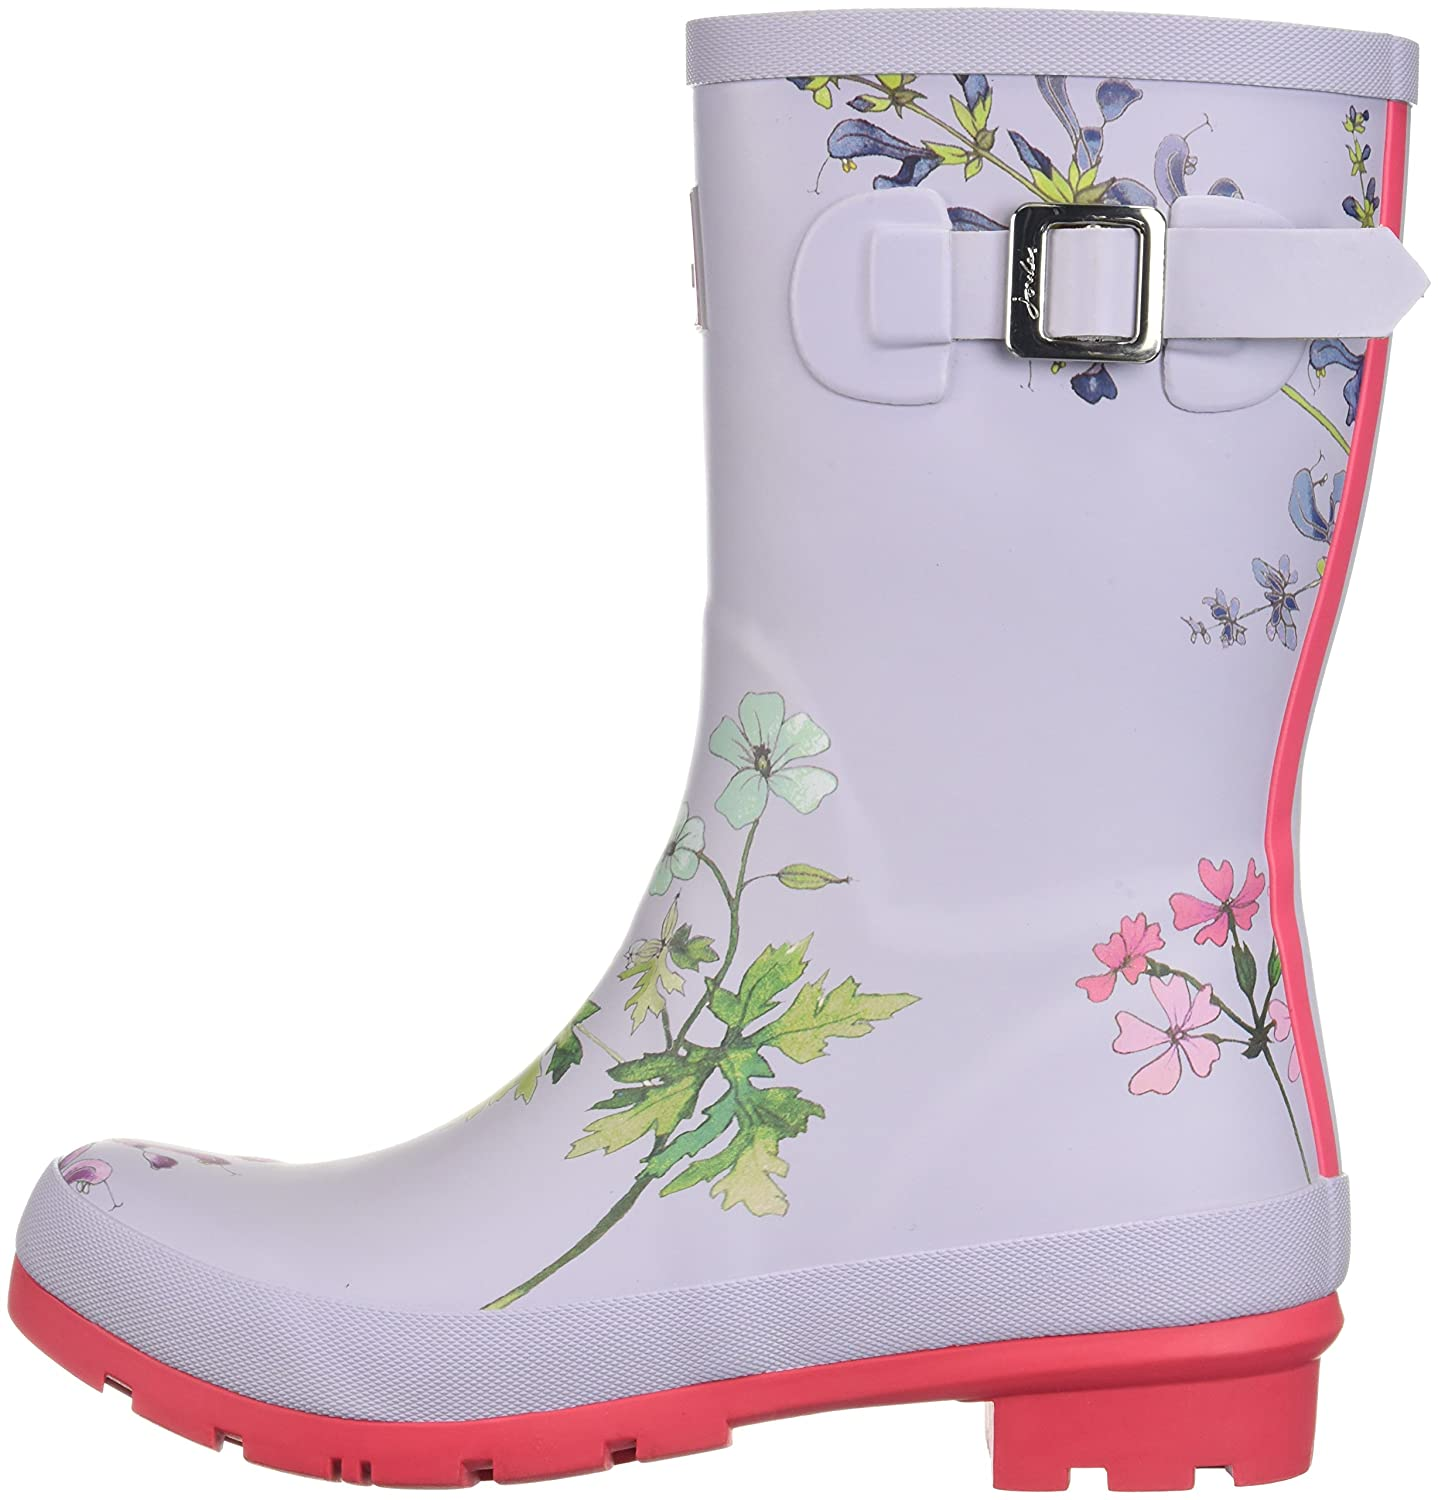 Joules Women's Mollywelly Rain Boot B073XJFLCY 10 B(M) US|Silver Botanical